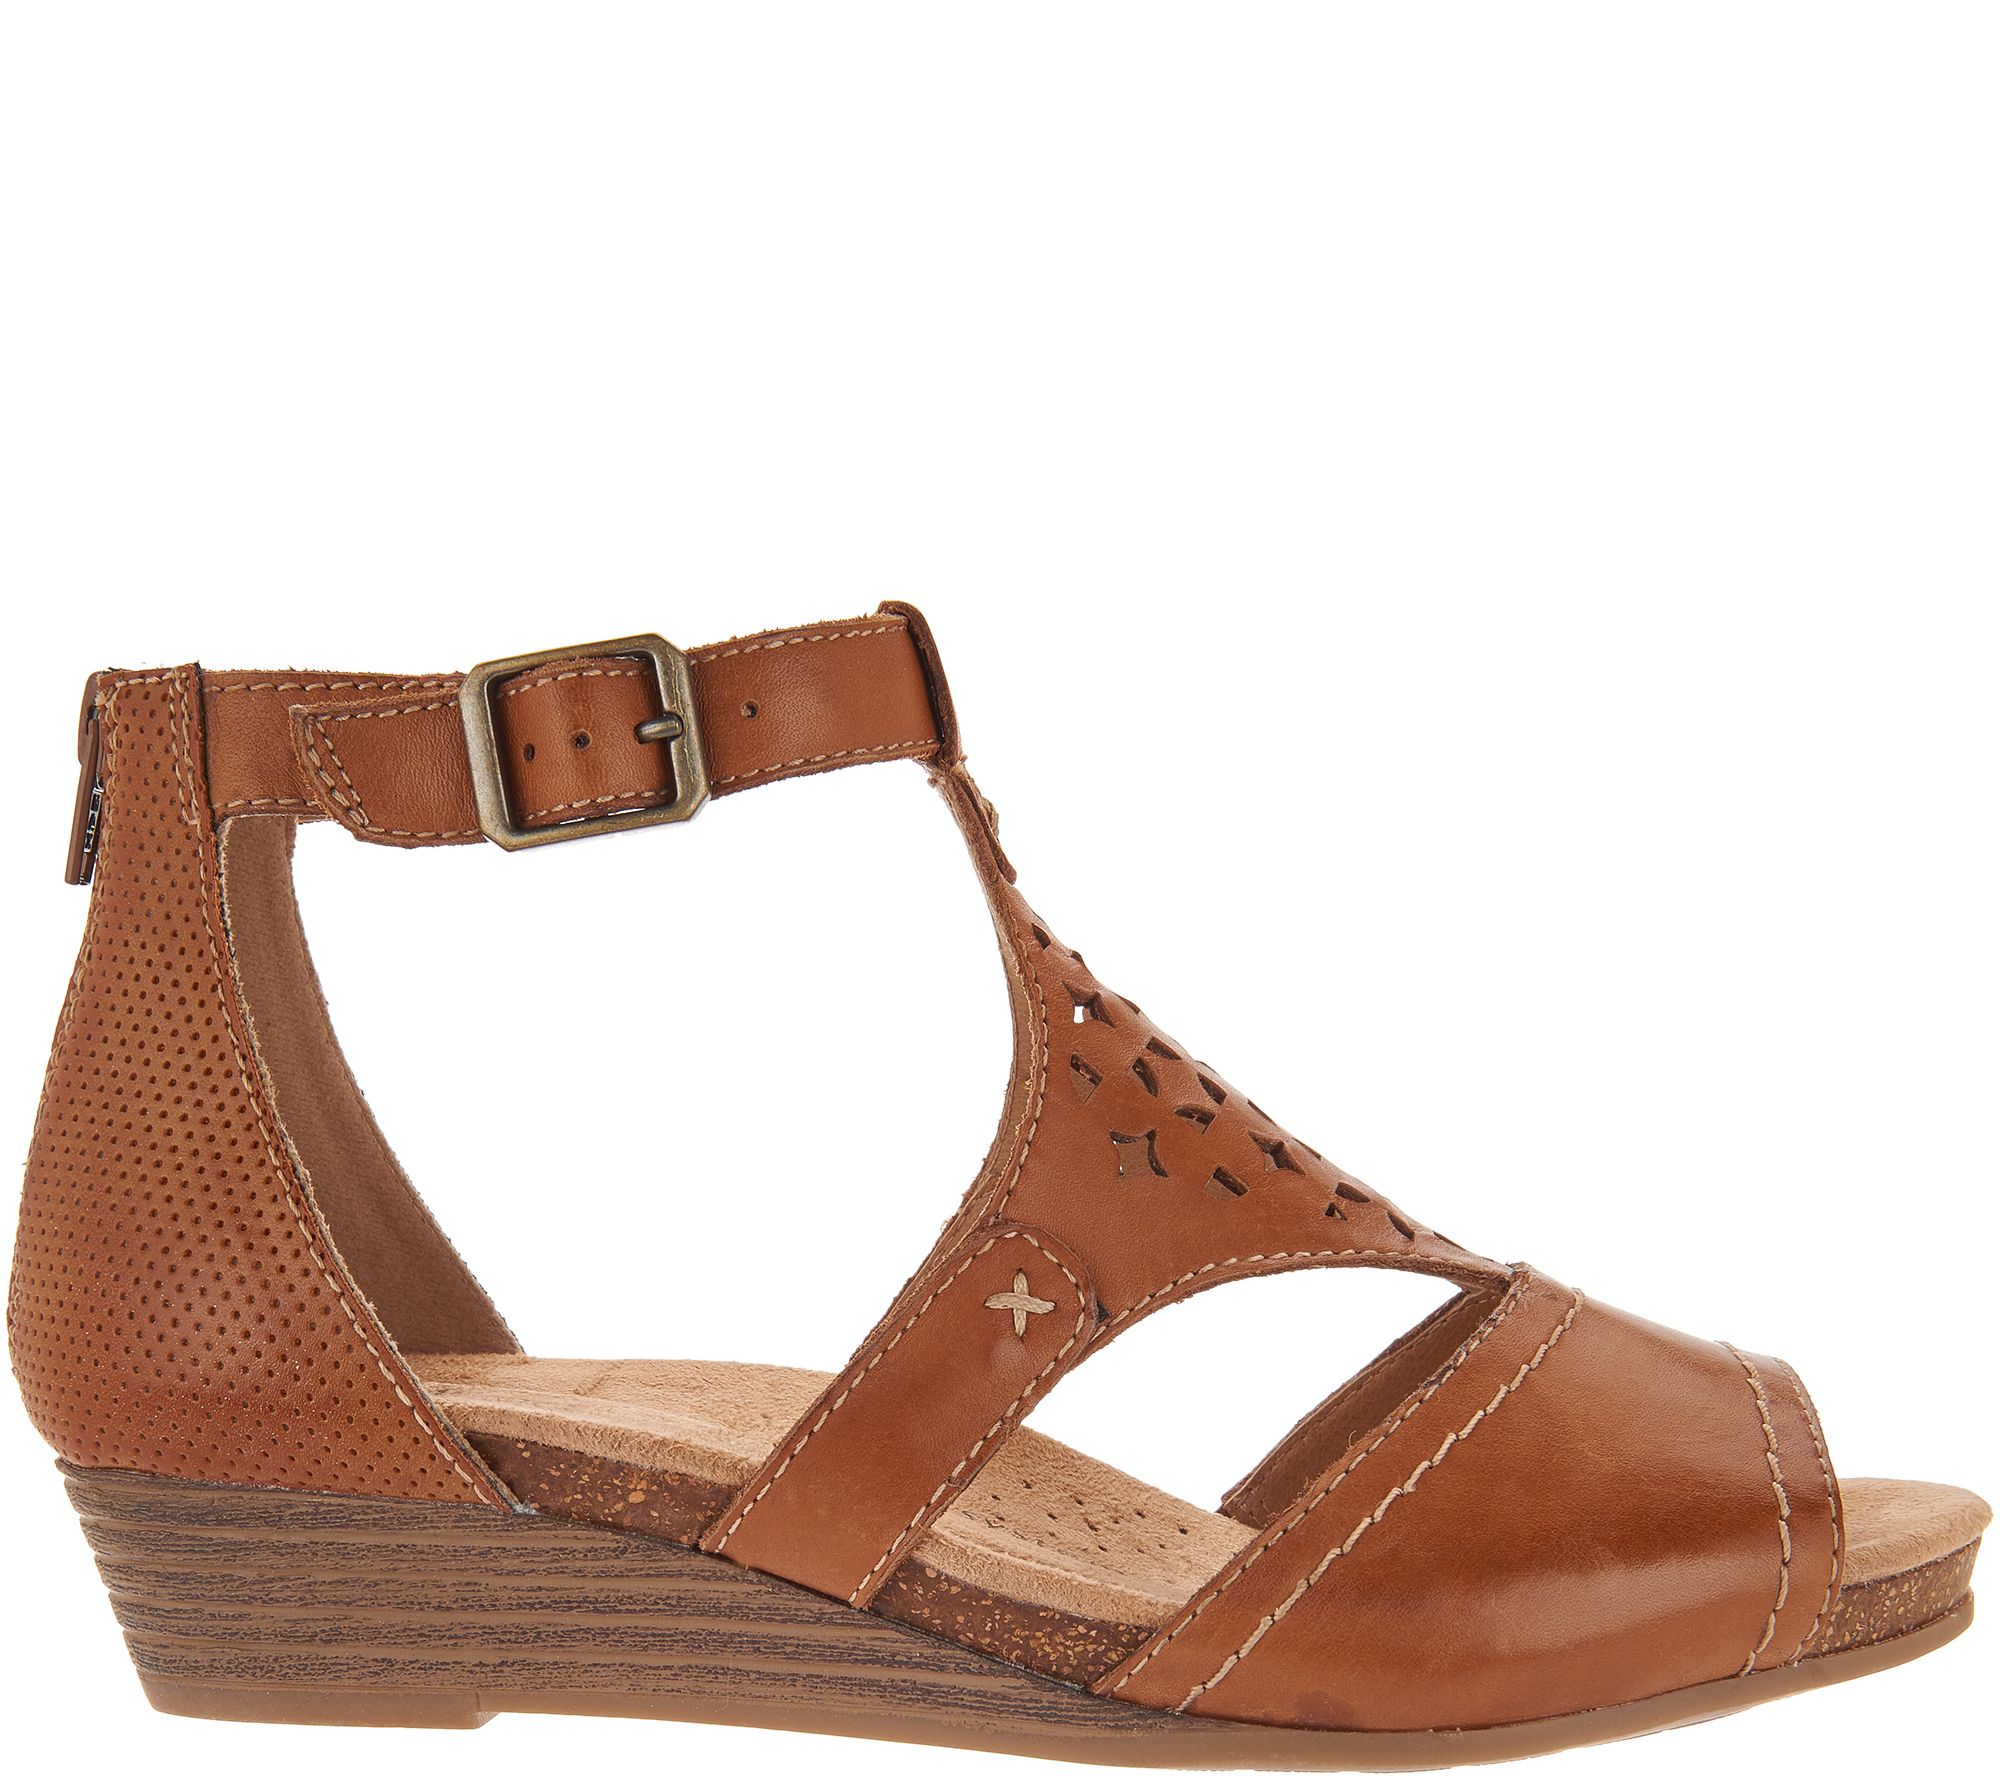 95d17246c027 Earth Origins Leather Cut-out Wedges - Hermia - Page 1 — QVC.com